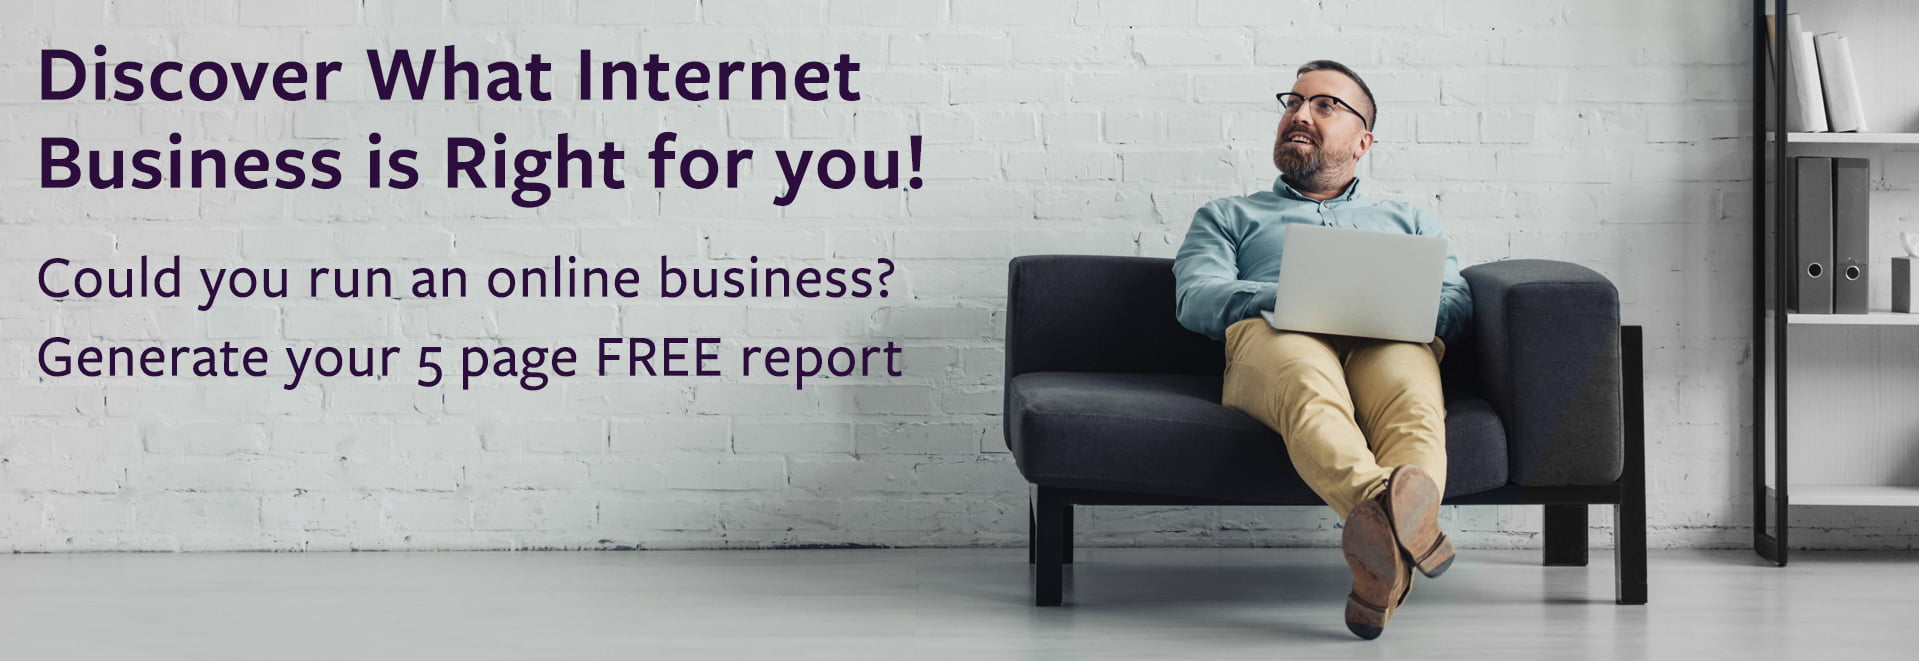 Discover What Internet Business is Right for you! Complete our short questionnaire. Generate your 5 page FREE report.